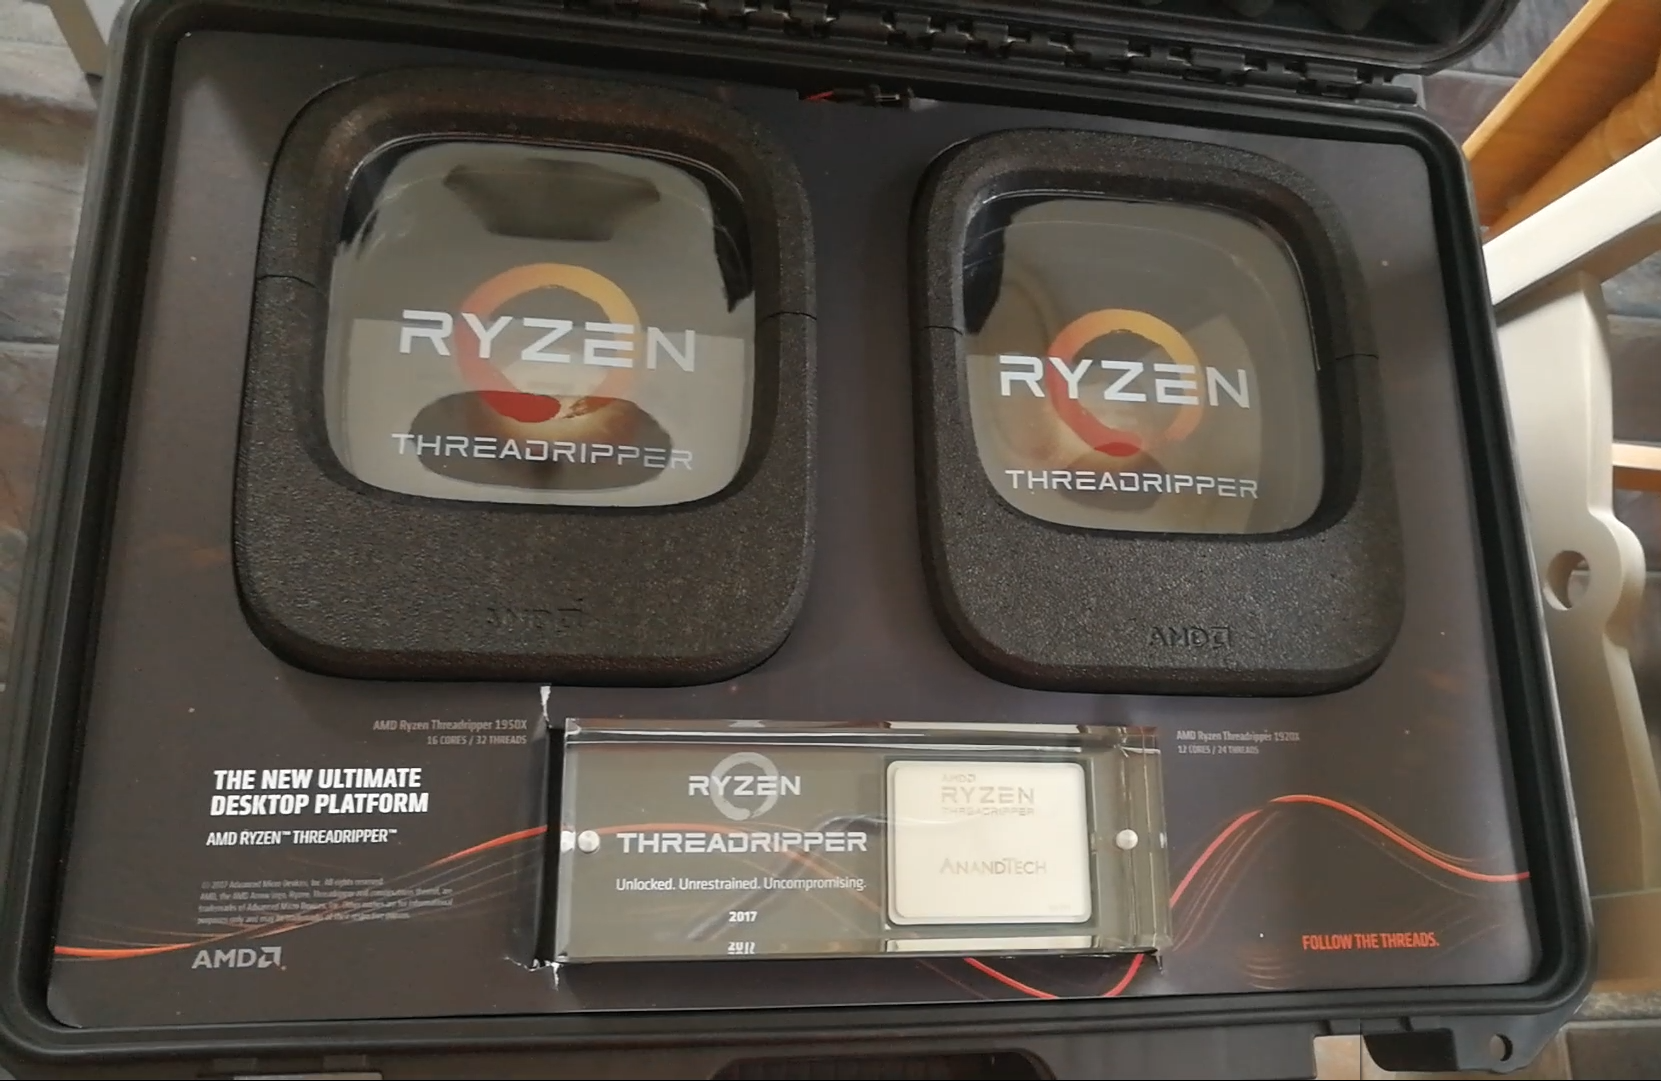 AMD Ryzen Threadripper 1950X and 1920X: We're Allowed To